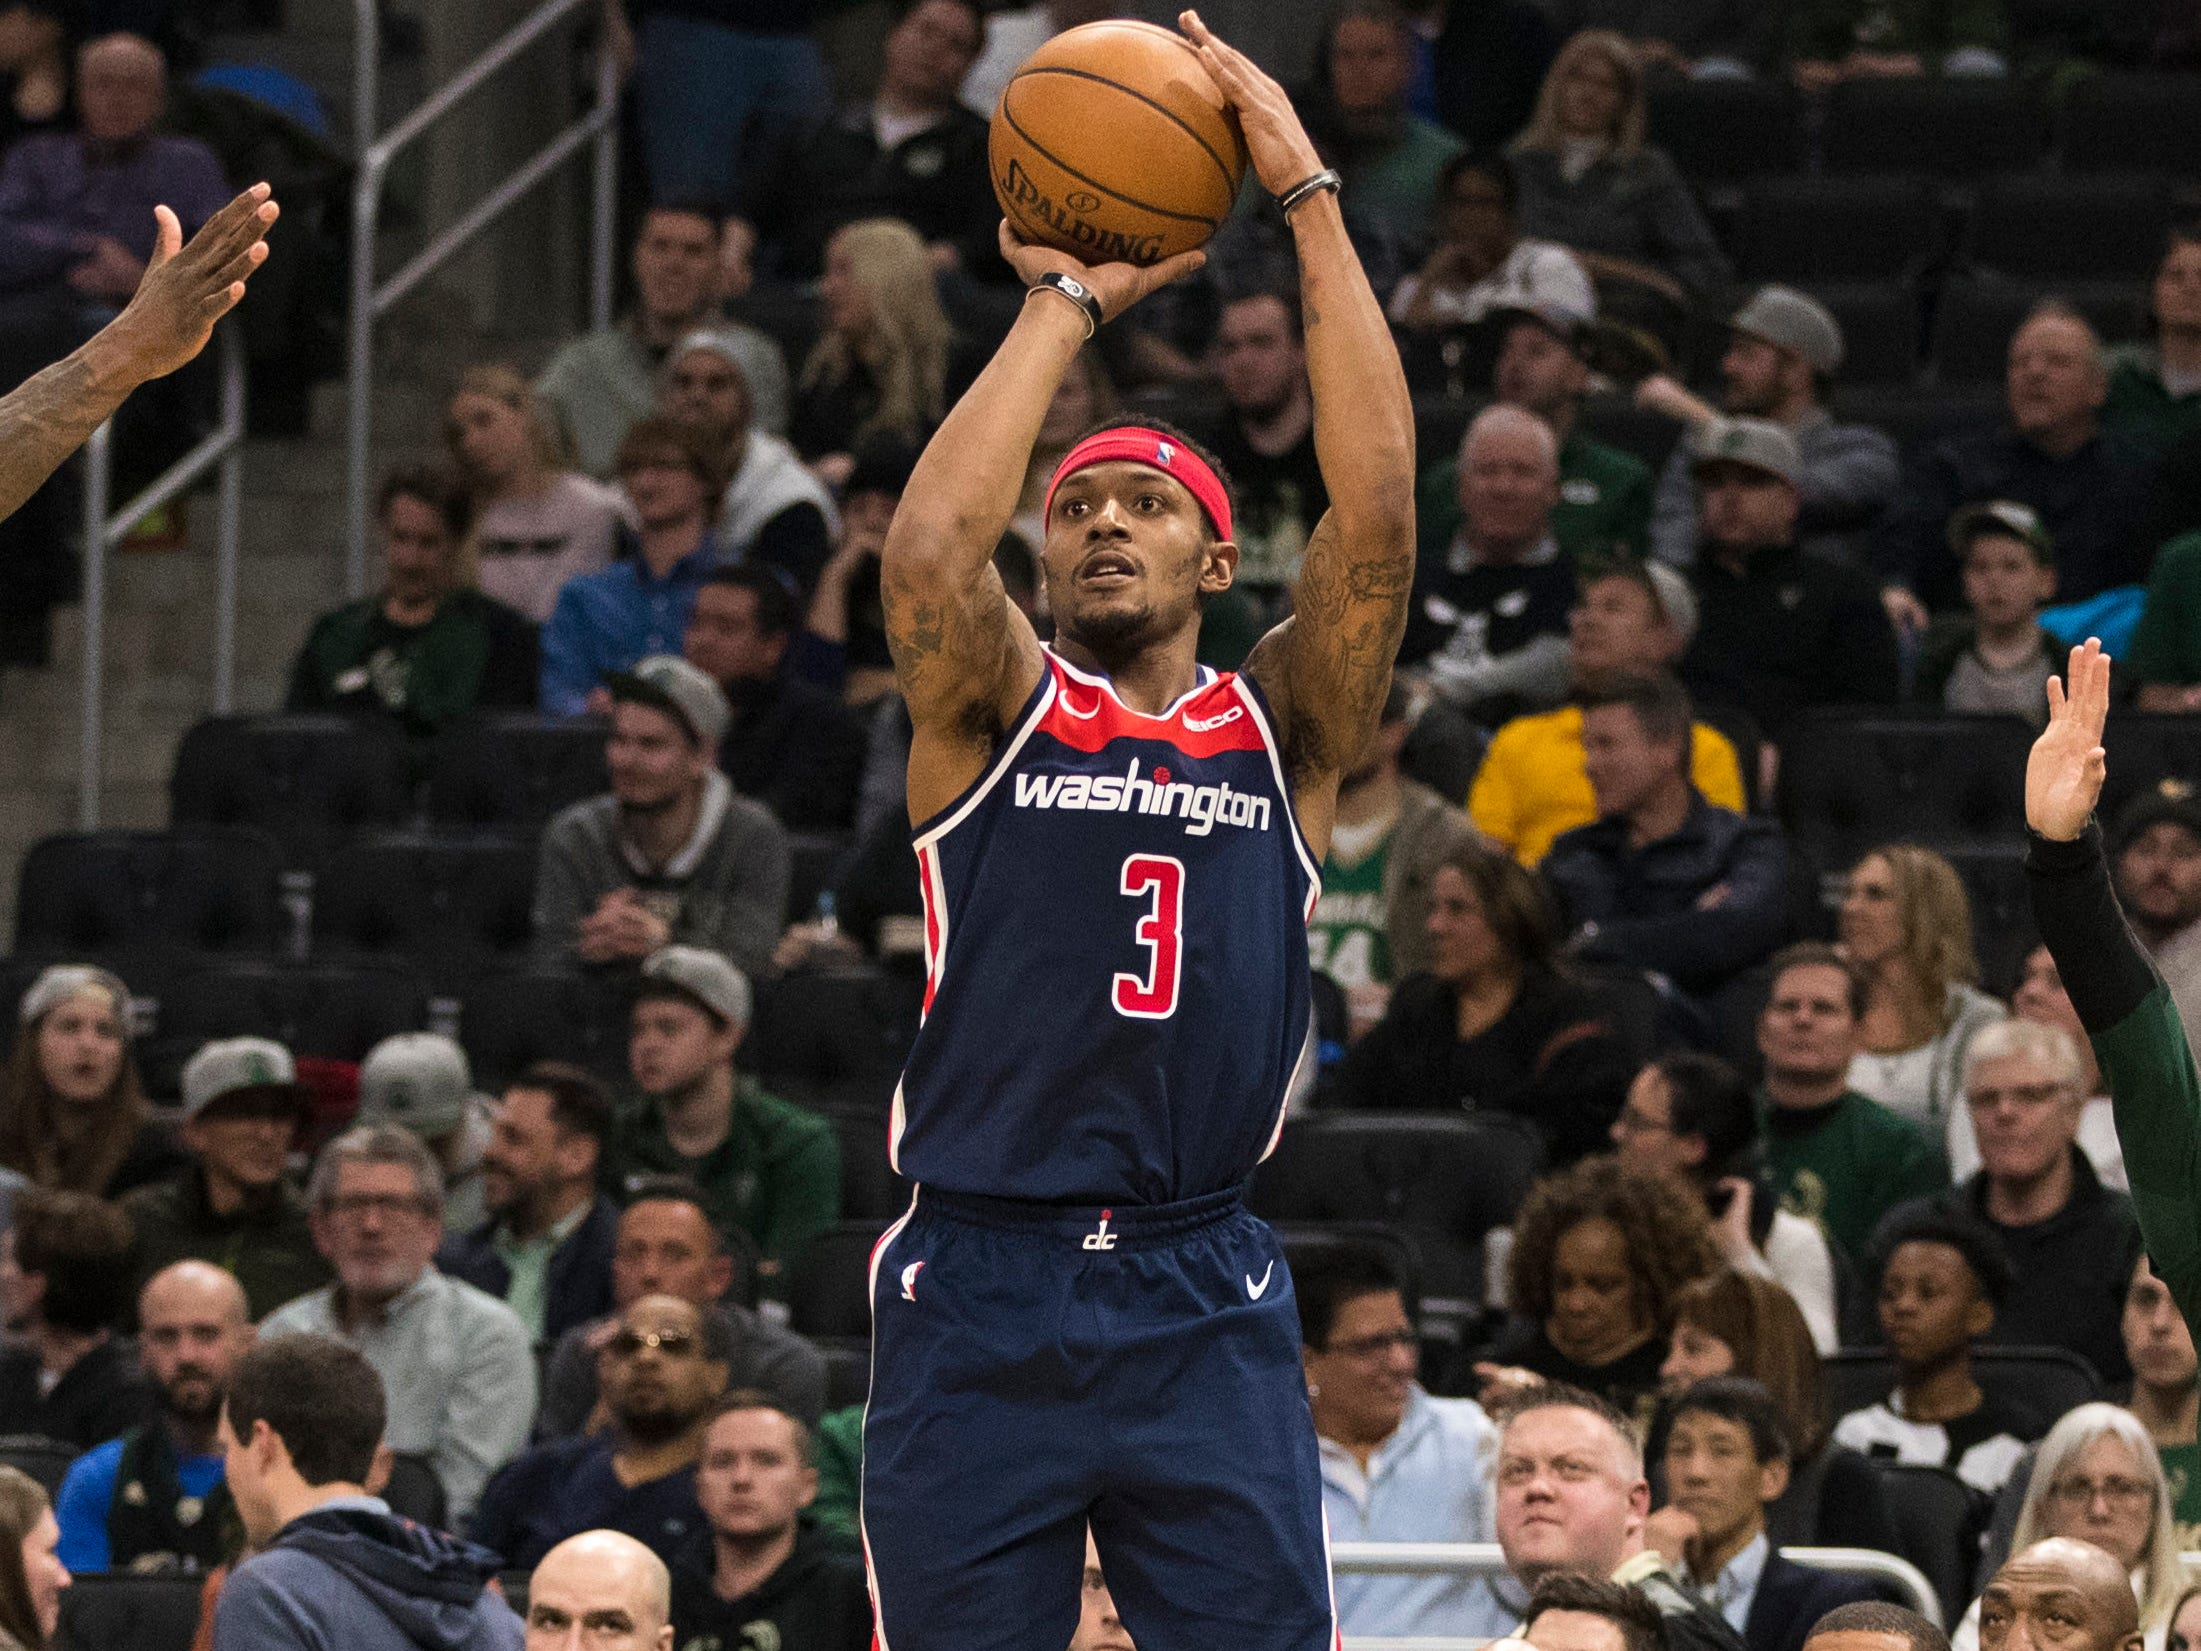 Guard Bradley Beal did his best to keep the Wizards in the game against the Bucks with 30 points on Wednesday night.